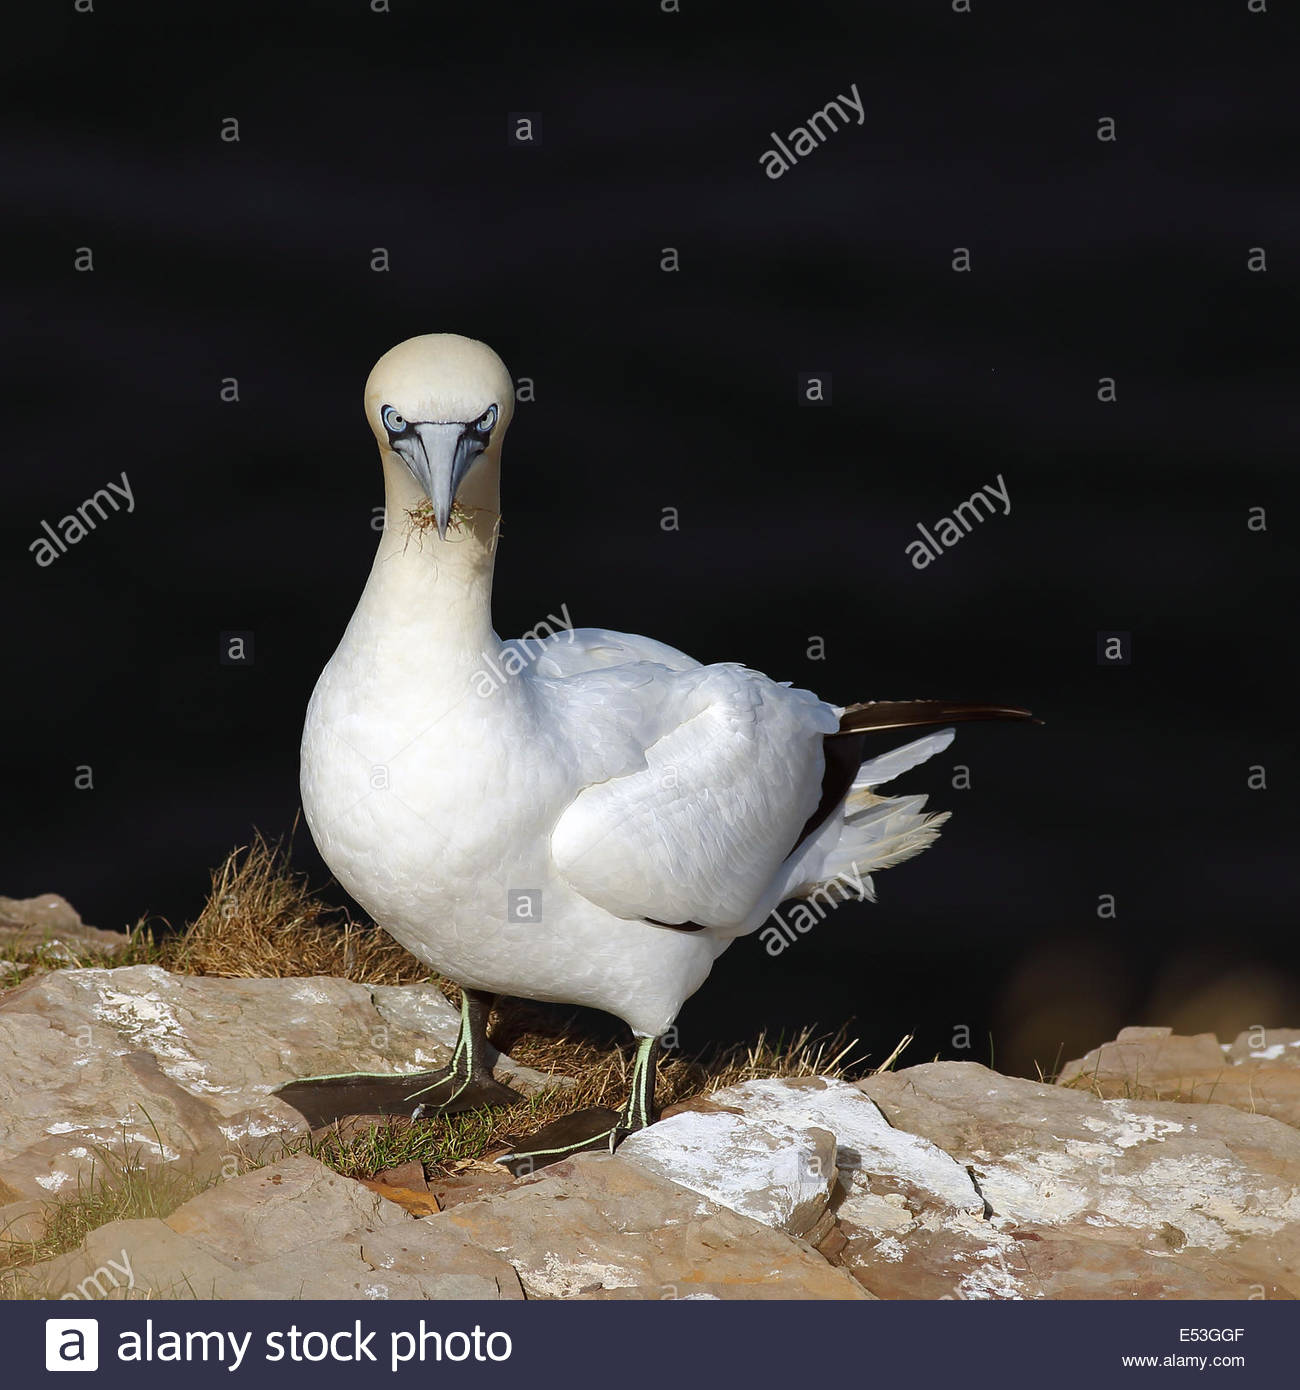 A Northern Gannet perched on a rock - Stock Image